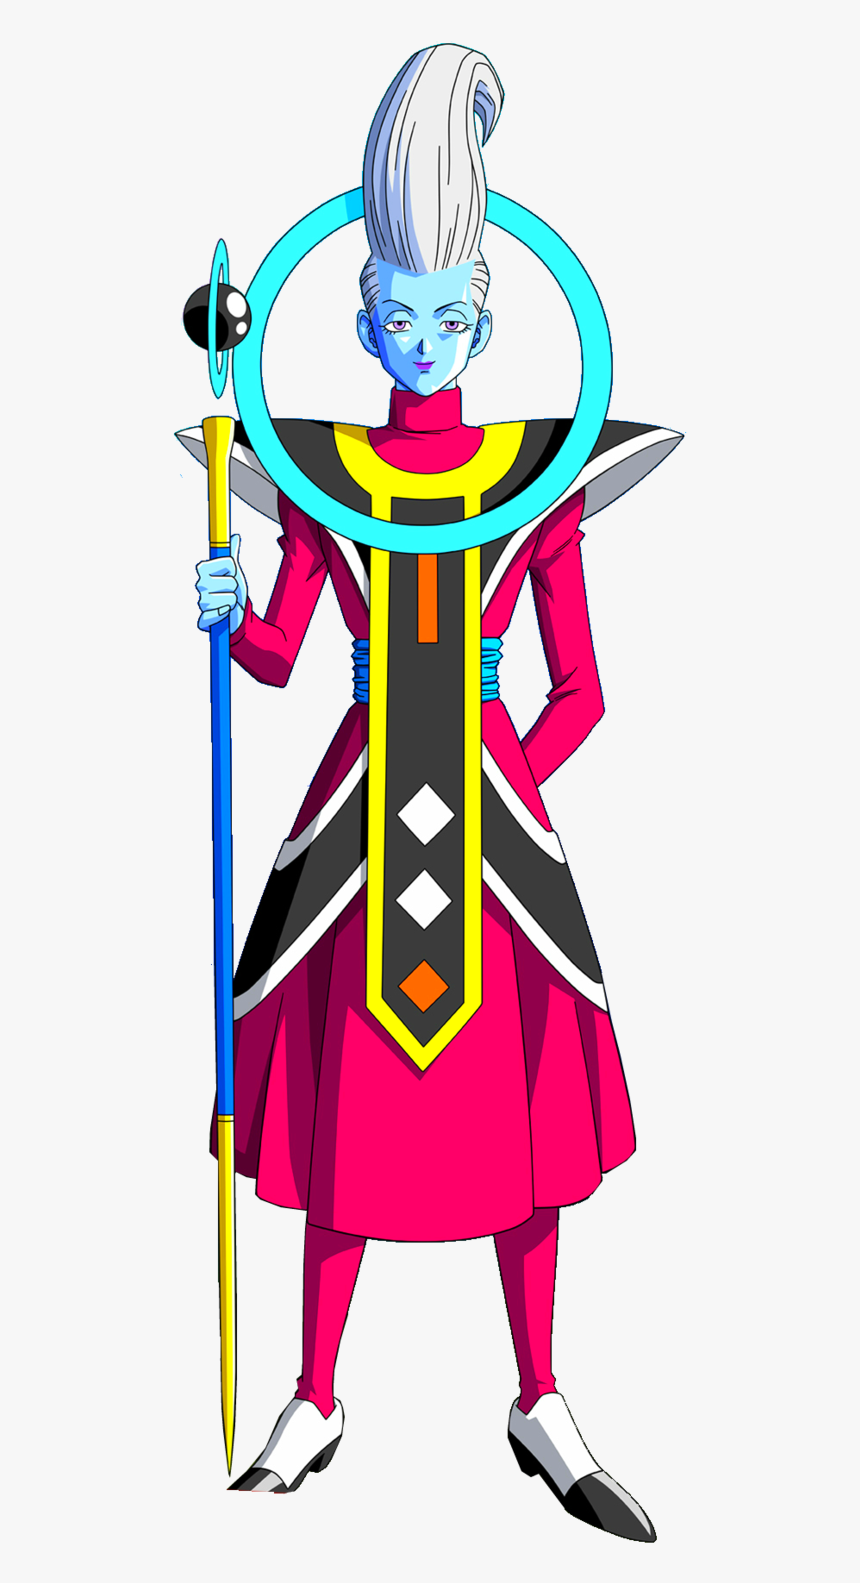 Whis Png , Png Download - Whis From Dragon Ball Super, Transparent Png, Free Download